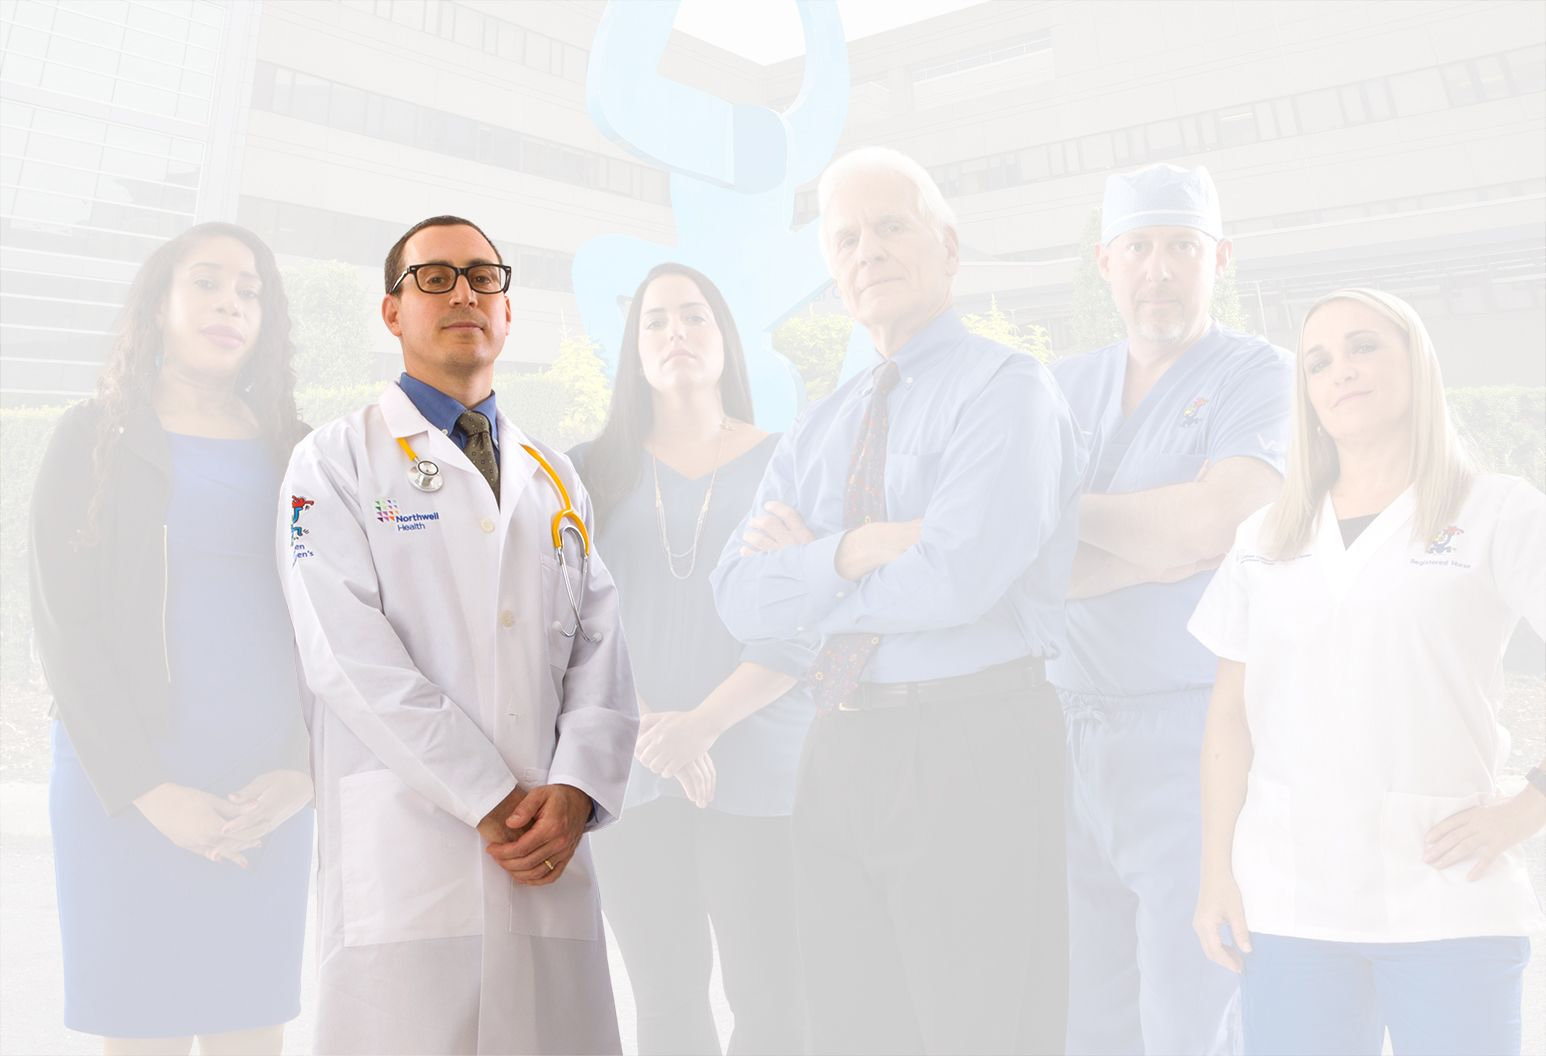 A doctor wearing a white lab coat with a Northwell Health logo separates from the rest of the team and the background.